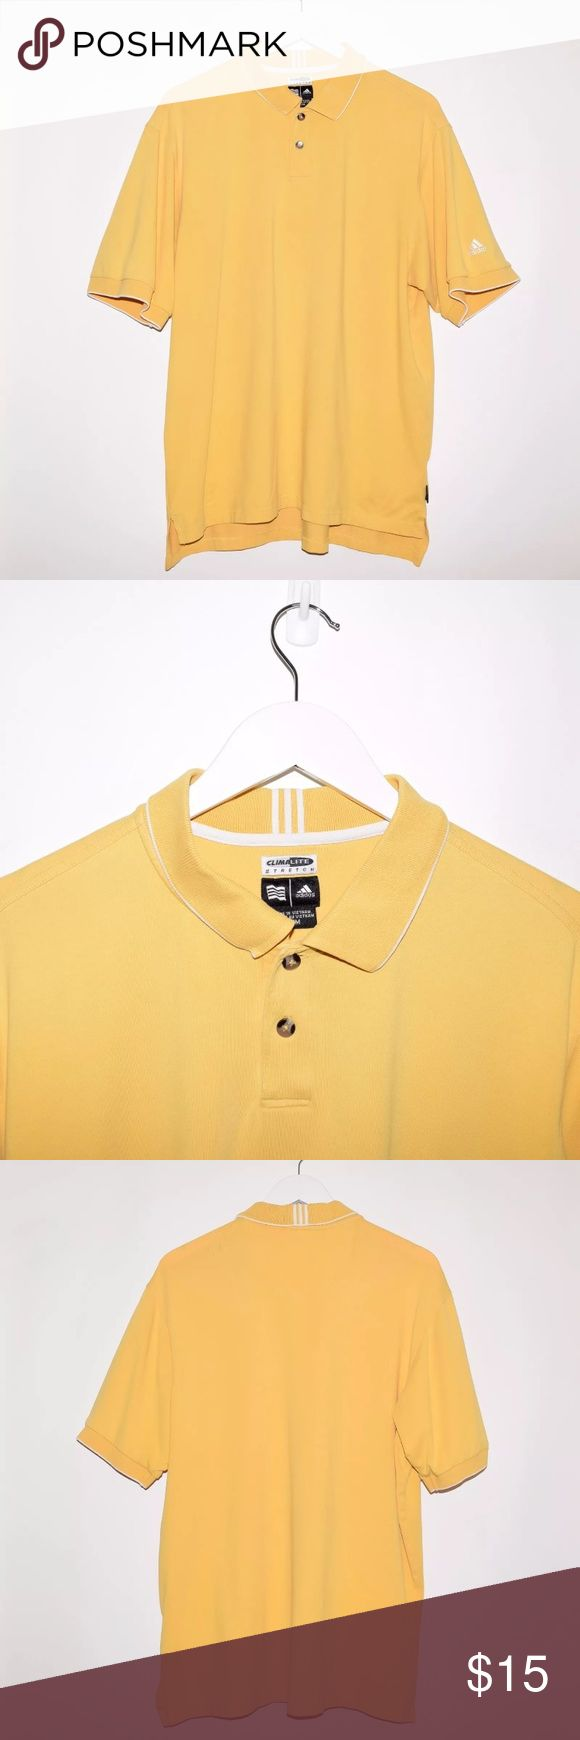 Adidas Climalite Stretch Golf Polo Shirt Brand: Adidas Item name: Men's Climalite Stretch Performance Golf Polo Shirt   Color: Mustard Yellow Condition: This is a pre-owned item. It is in excellent condition with no stains, rips, holes, etc.Comes from a smoke free household. Size: Medium Measurements laying flat: Pit to pit - 23 inches Neckline to base - Front: 27 inches Back: 29.5 inches adidas Shirts Polos